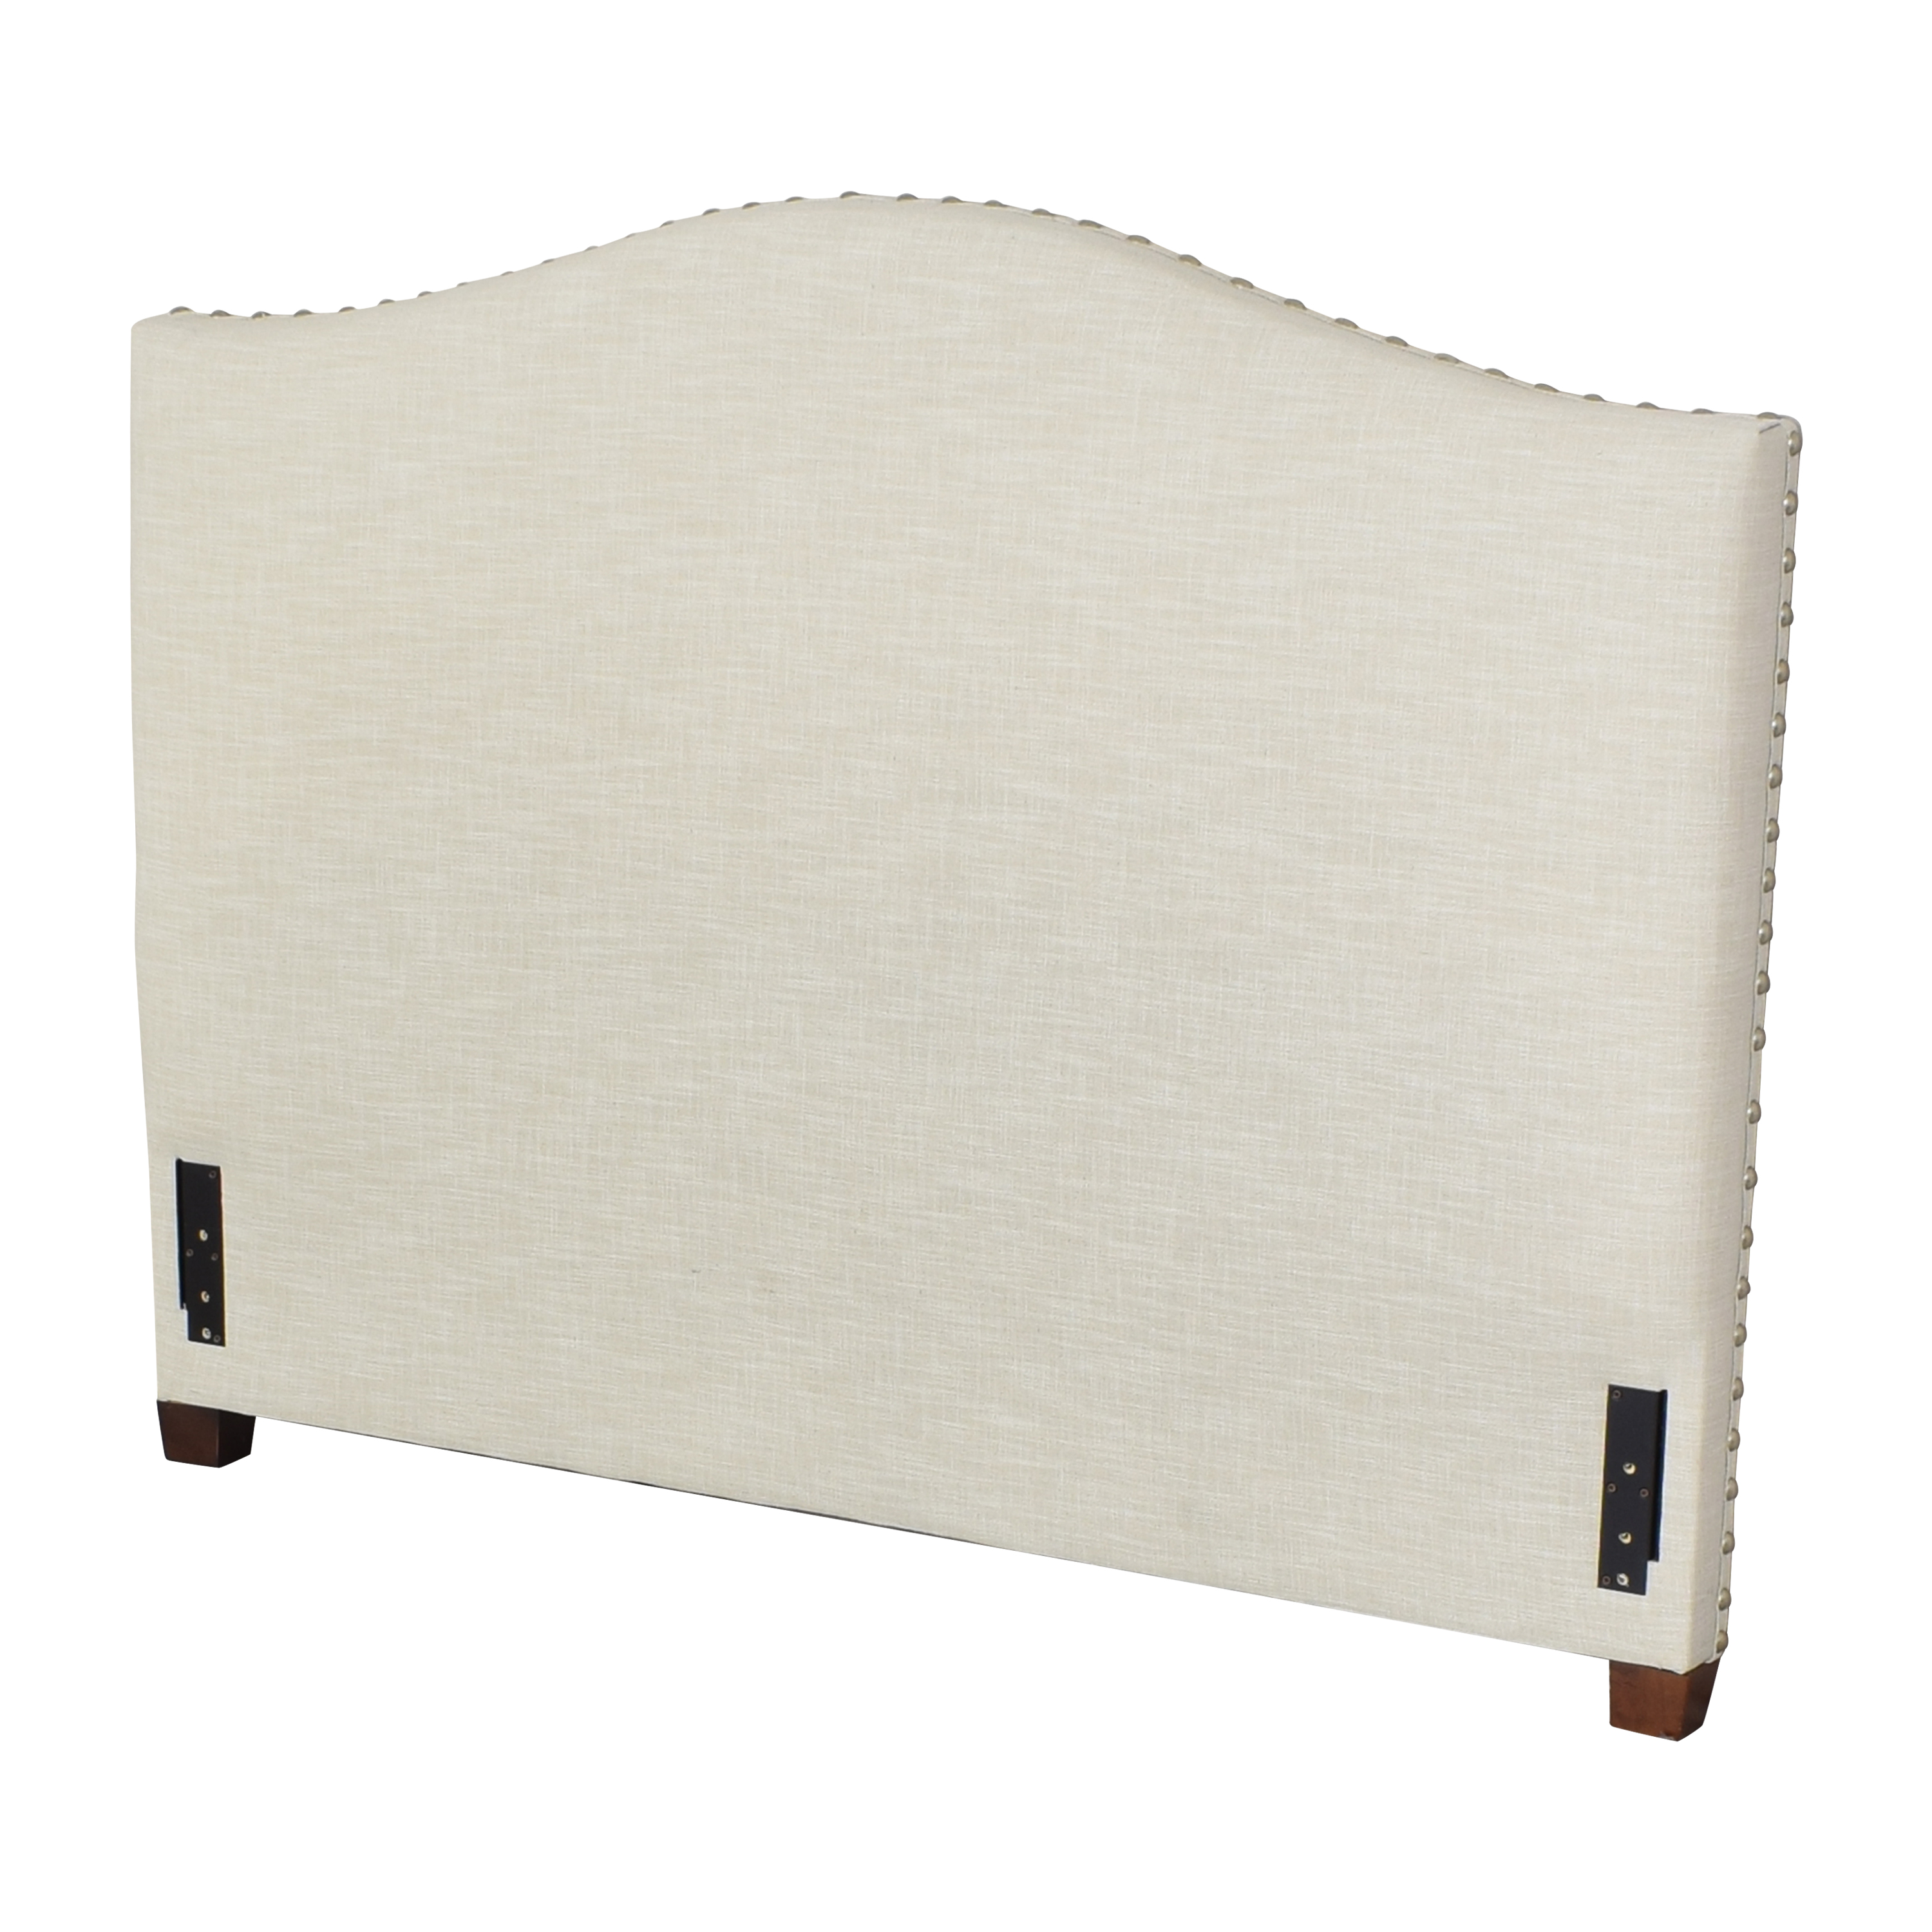 Pottery Barn Pottery Barn Raleigh Curved Upholstered Queen Headboard nyc